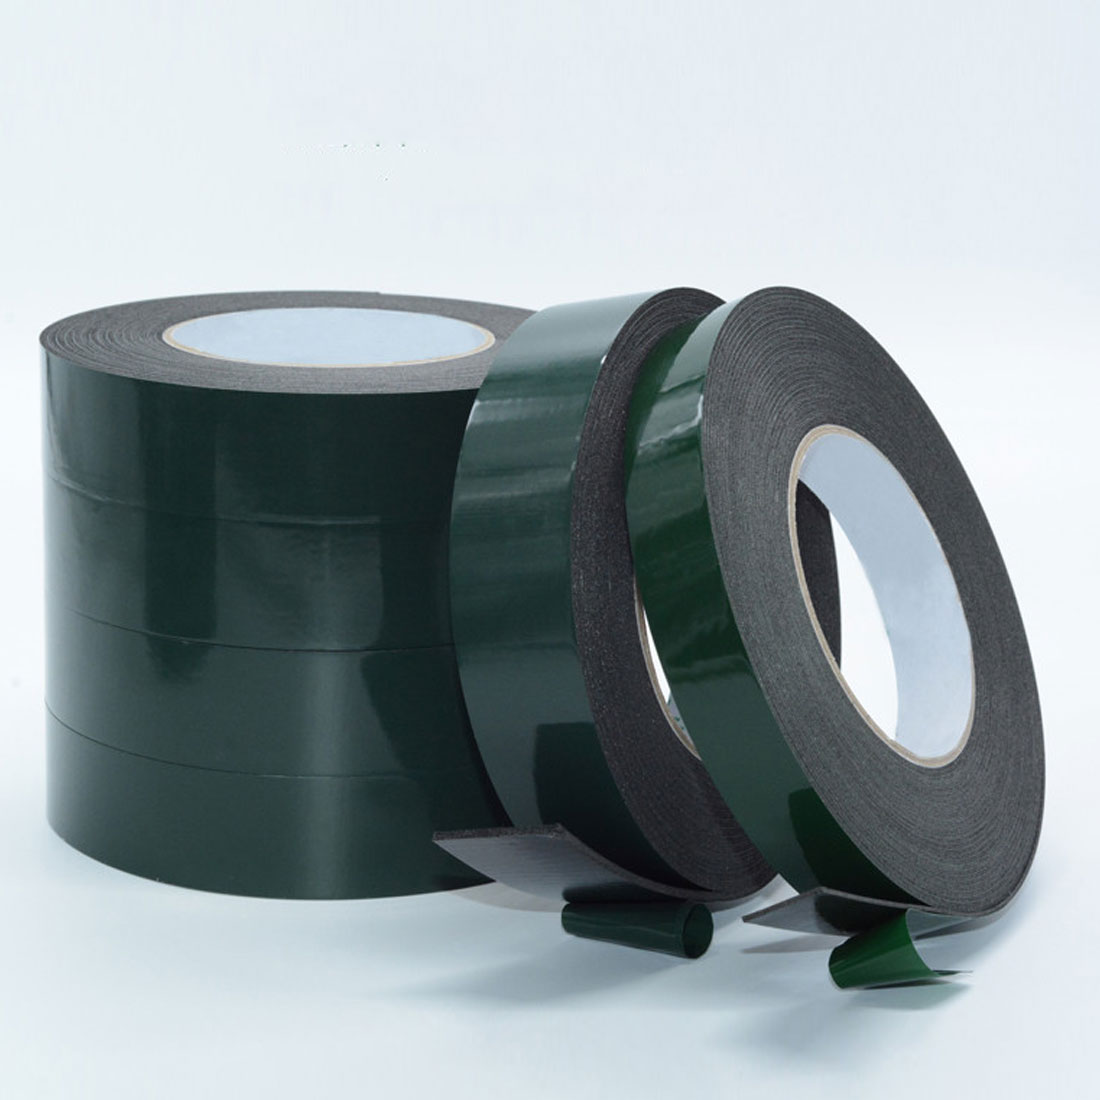 Strong Adhesive Waterproof Double Sided Tape 10m Length 10mm Width Foam Green Tape Trim Home Car 5m strong waterproof adhesive double sided foam tape car trim plate width 6 9 12 19 25 38 50mm